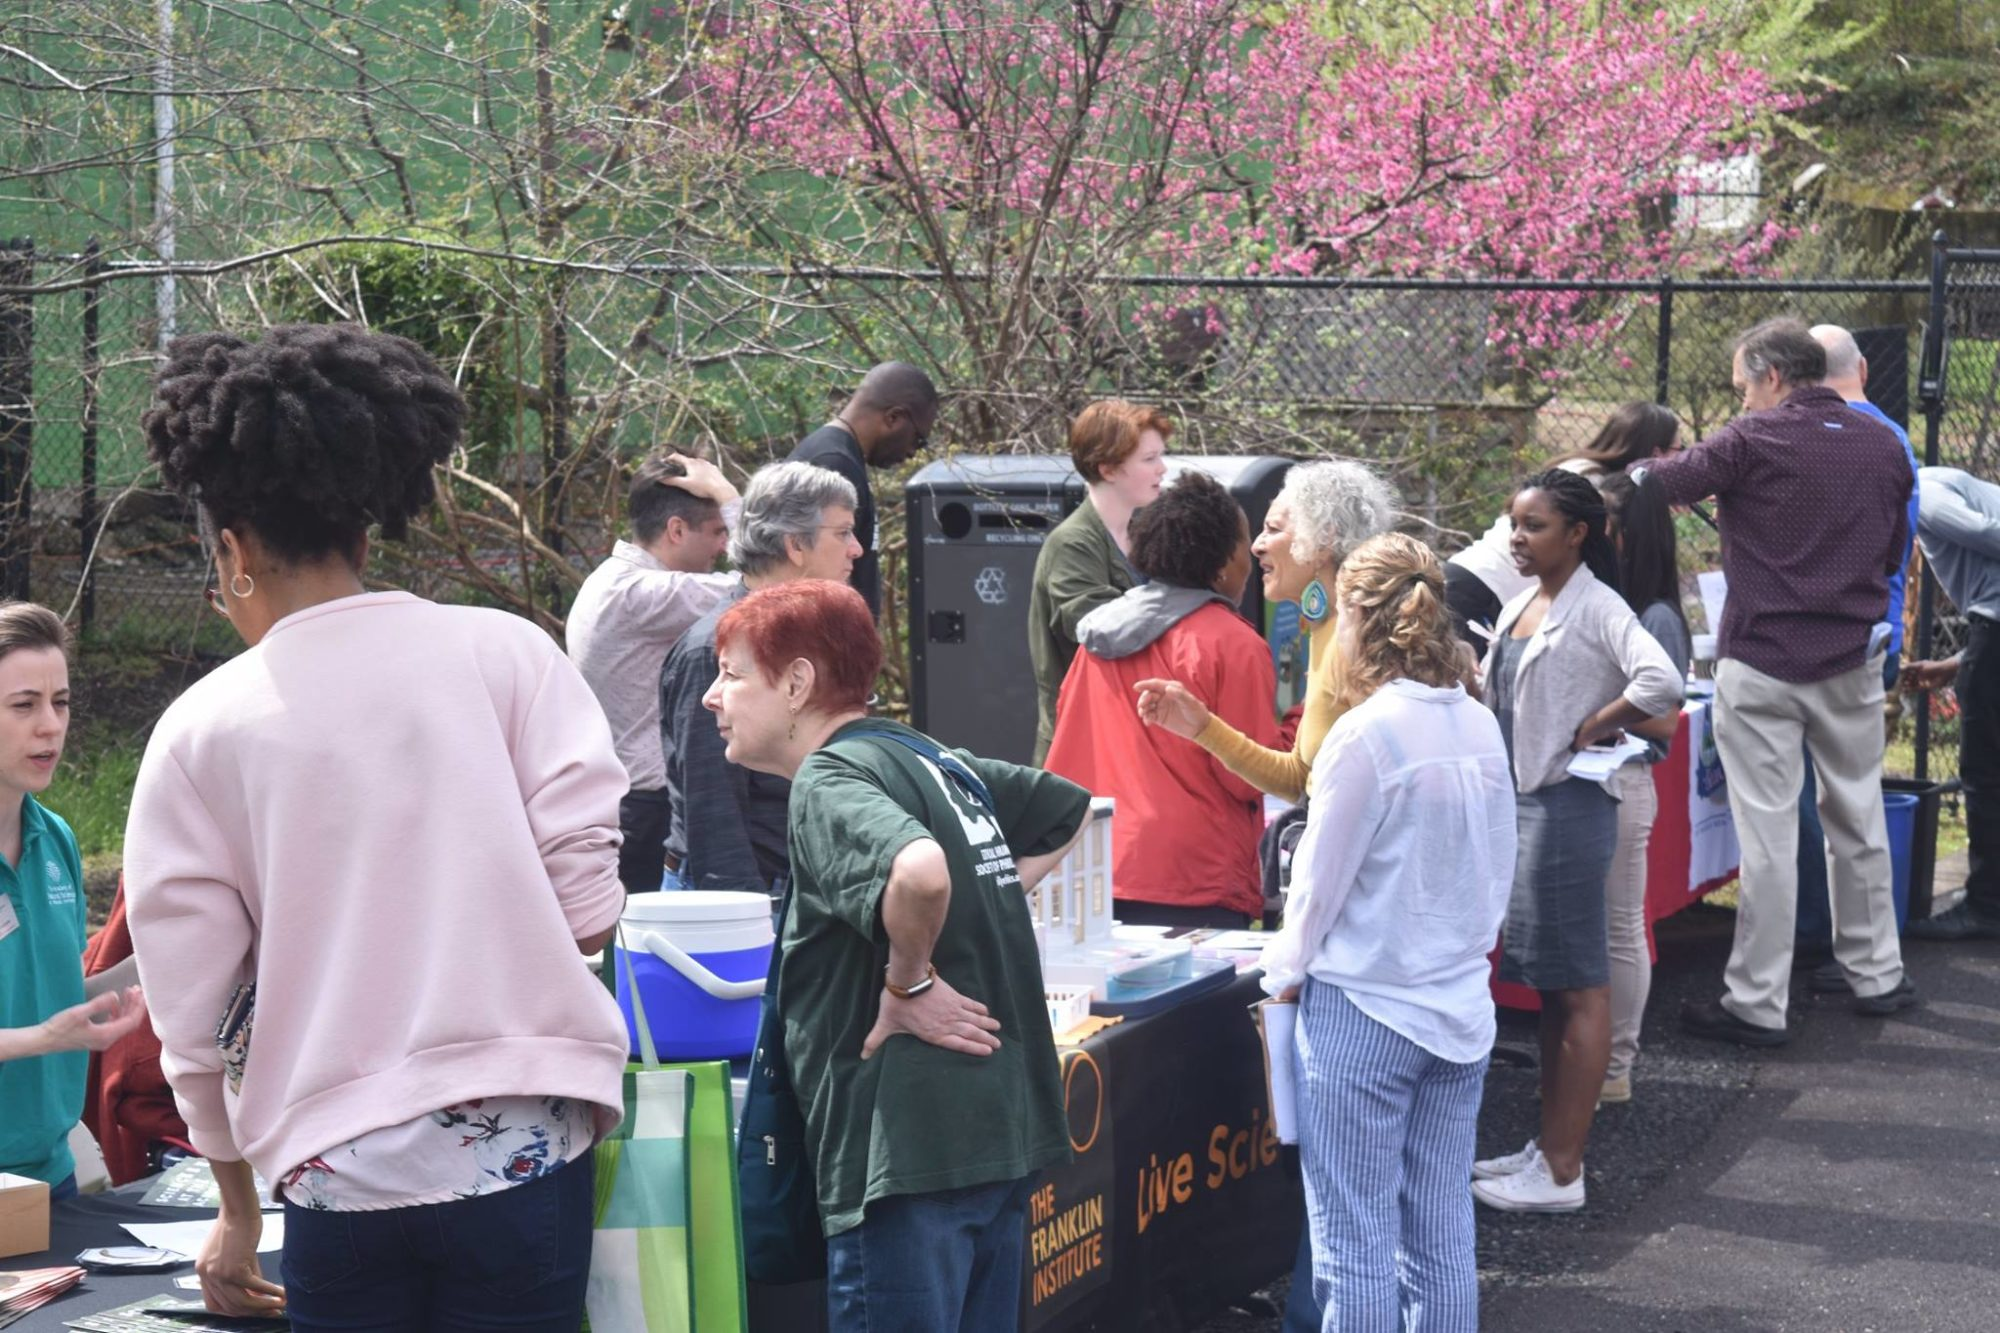 A community event outside OEEC in April 2019, where partners and collaborators came to engage with community members about environmental issues in celebration of Earth Day (photo courtesy OEEC). Visitors surround a row of tables with information and demonstration items on them, and there is a tree in bloom in the background.